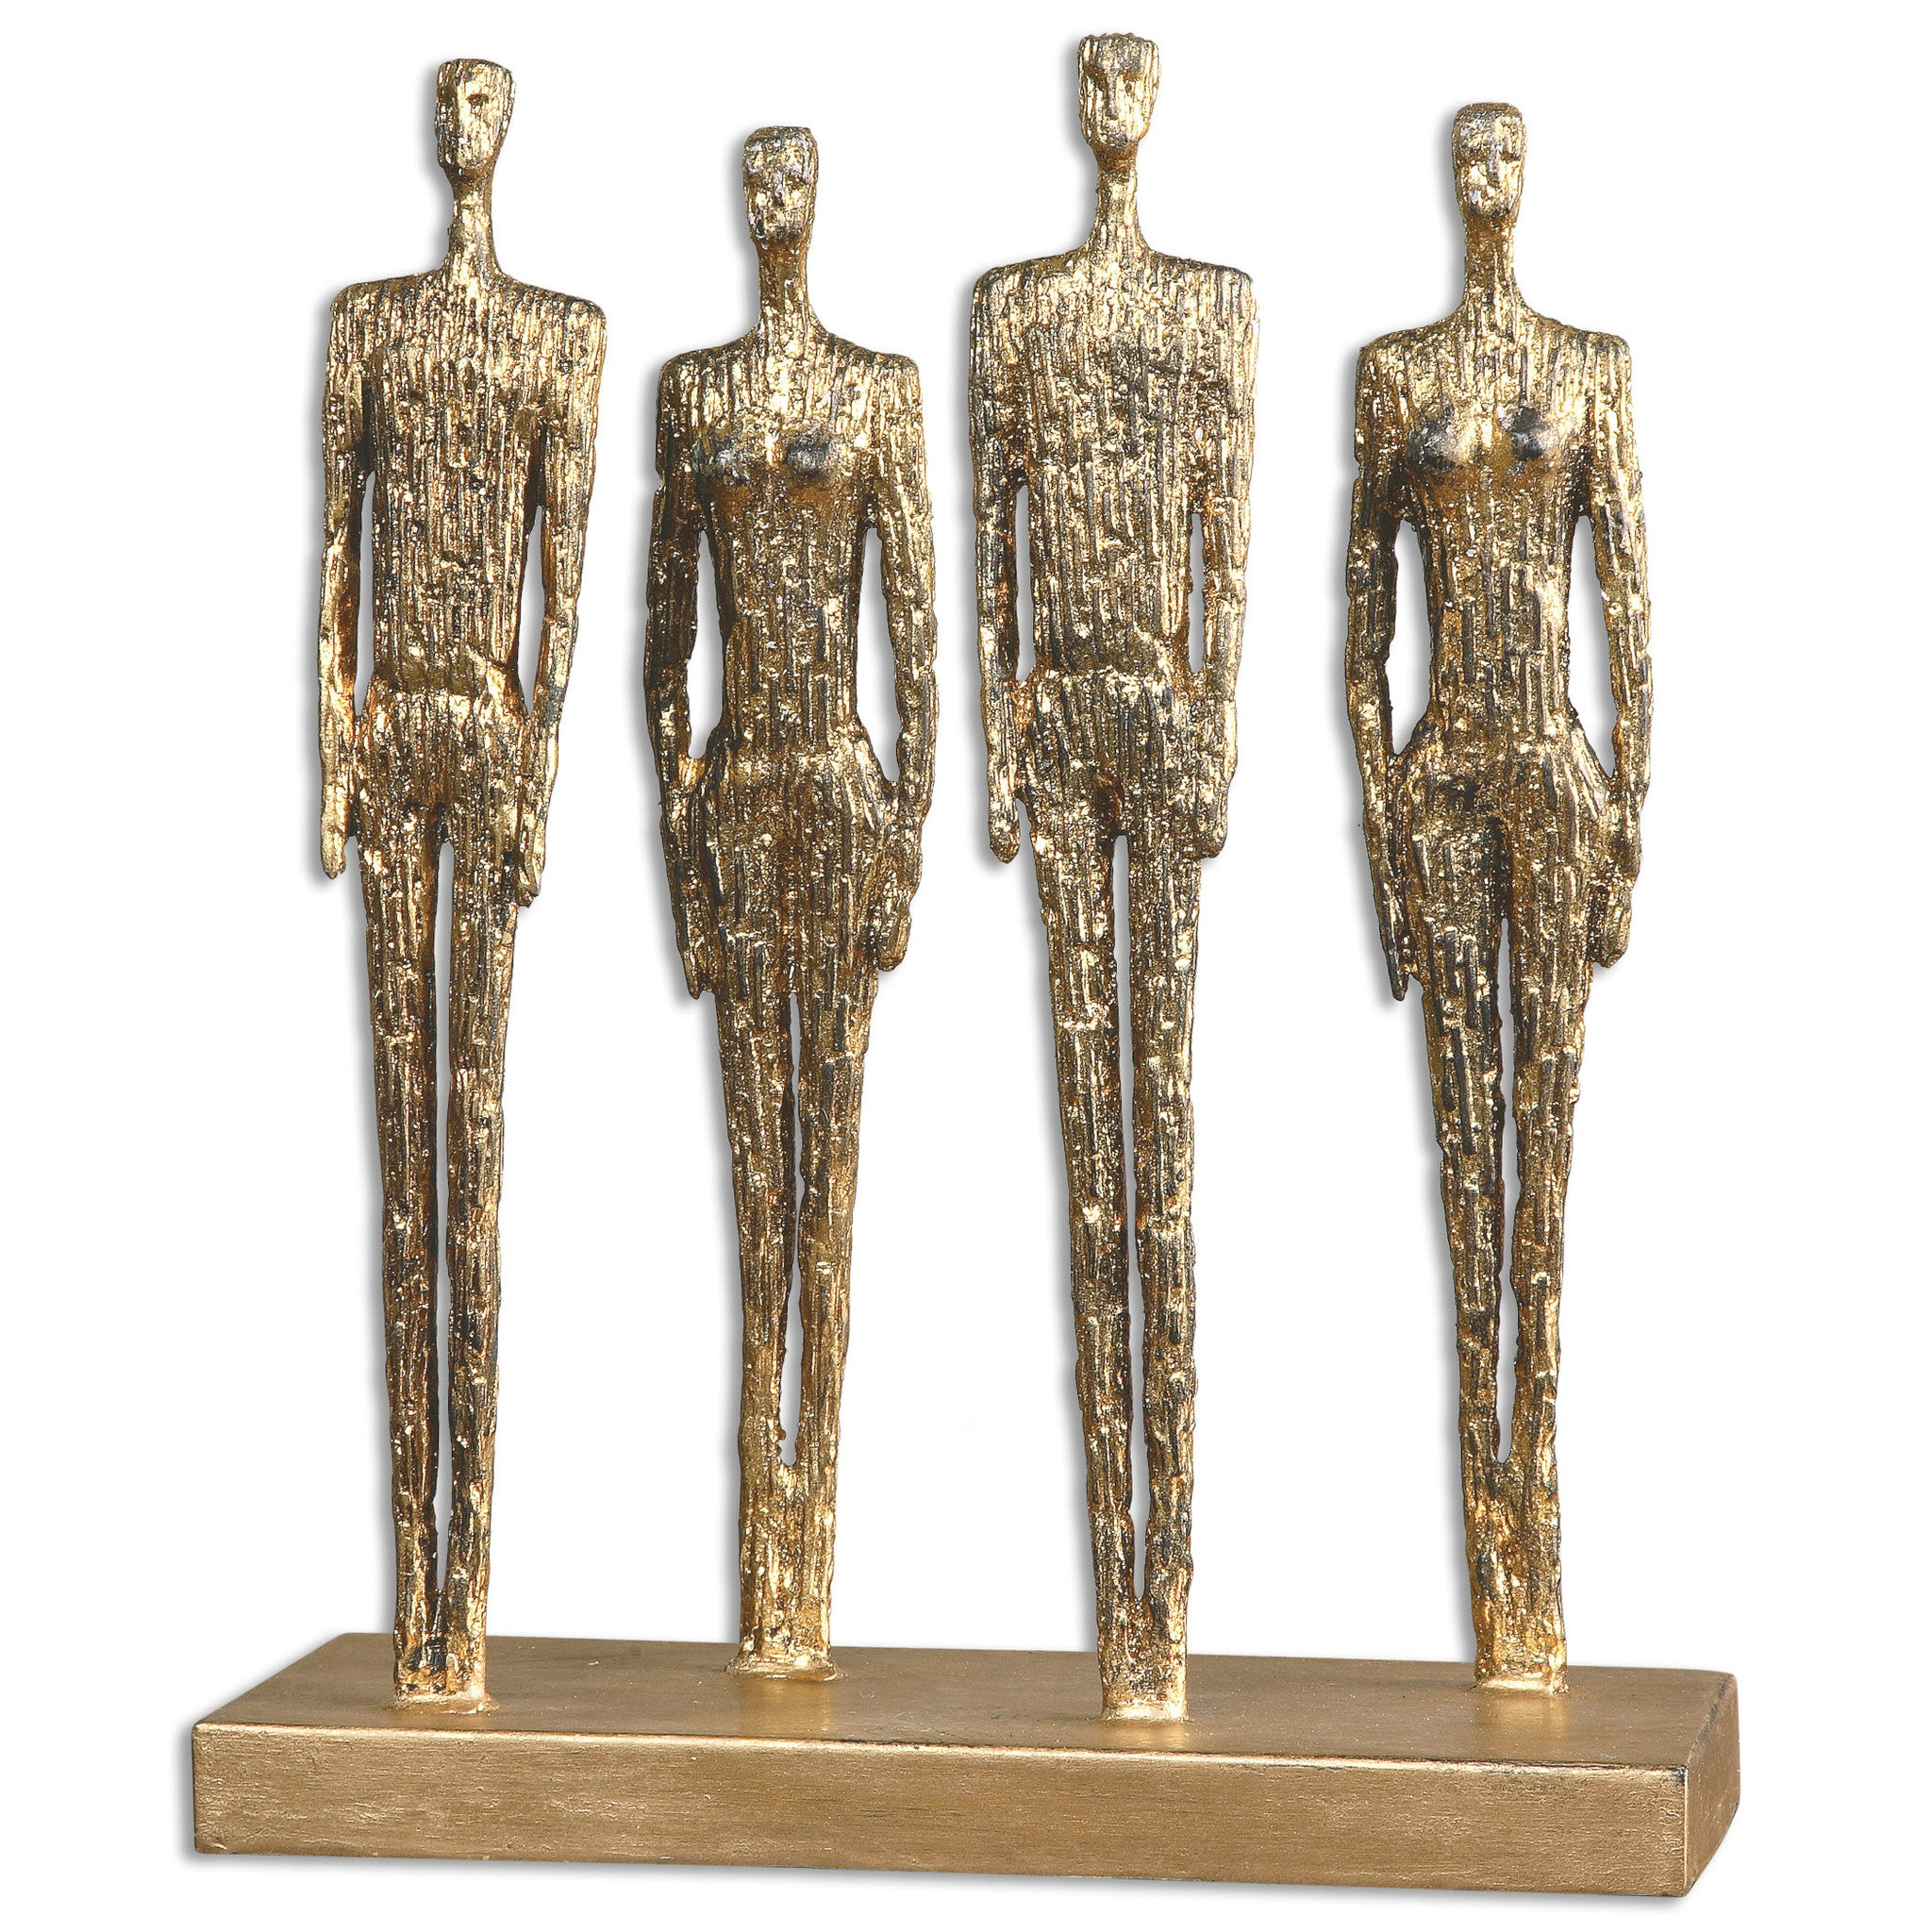 Metal sculpture of cadets at attention in a distressed gold finish